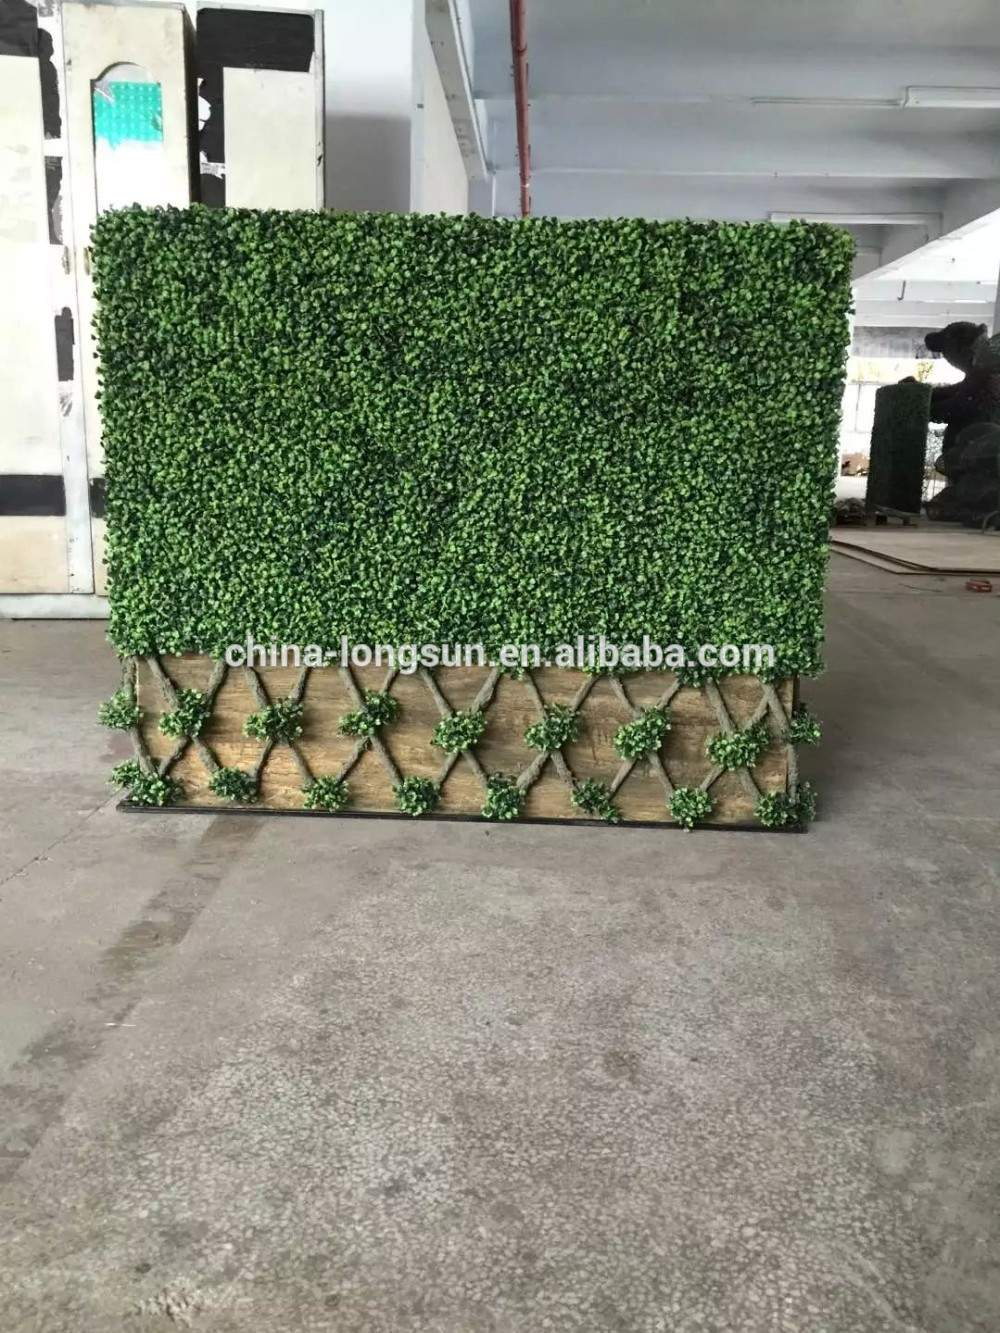 lsd artificial plants 50 50cm artificial boxwood hedges plastic outdoor fence garden decoration fence screen greener